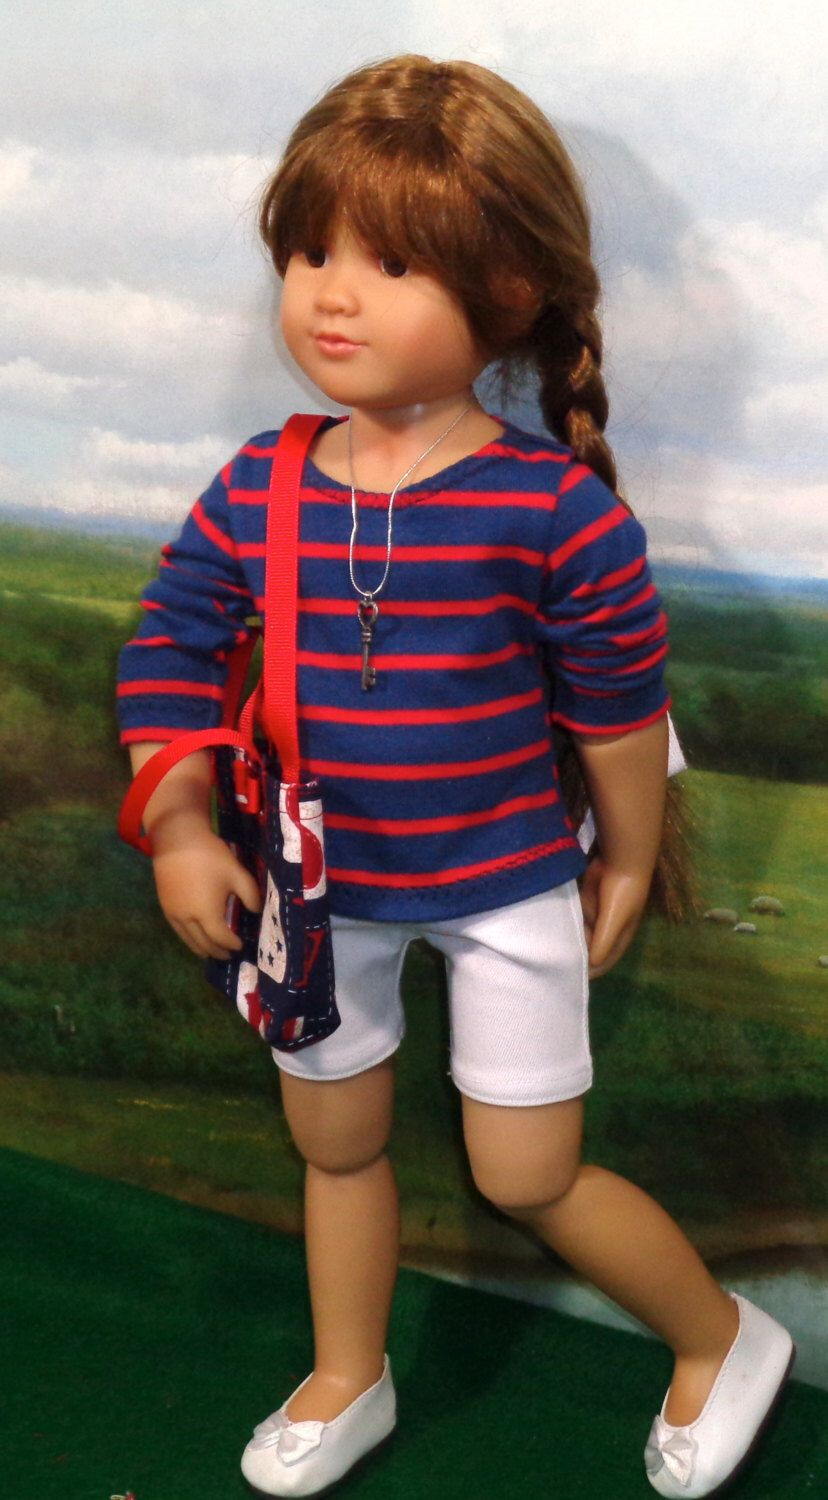 White Denim Shorts and Tee fits Slim 18 Inch Dolls like Kidz N Cats by SugarloafDollClothes on Etsy https://www.etsy.com/listing/294482859/white-denim-shorts-and-tee-fits-slim-18